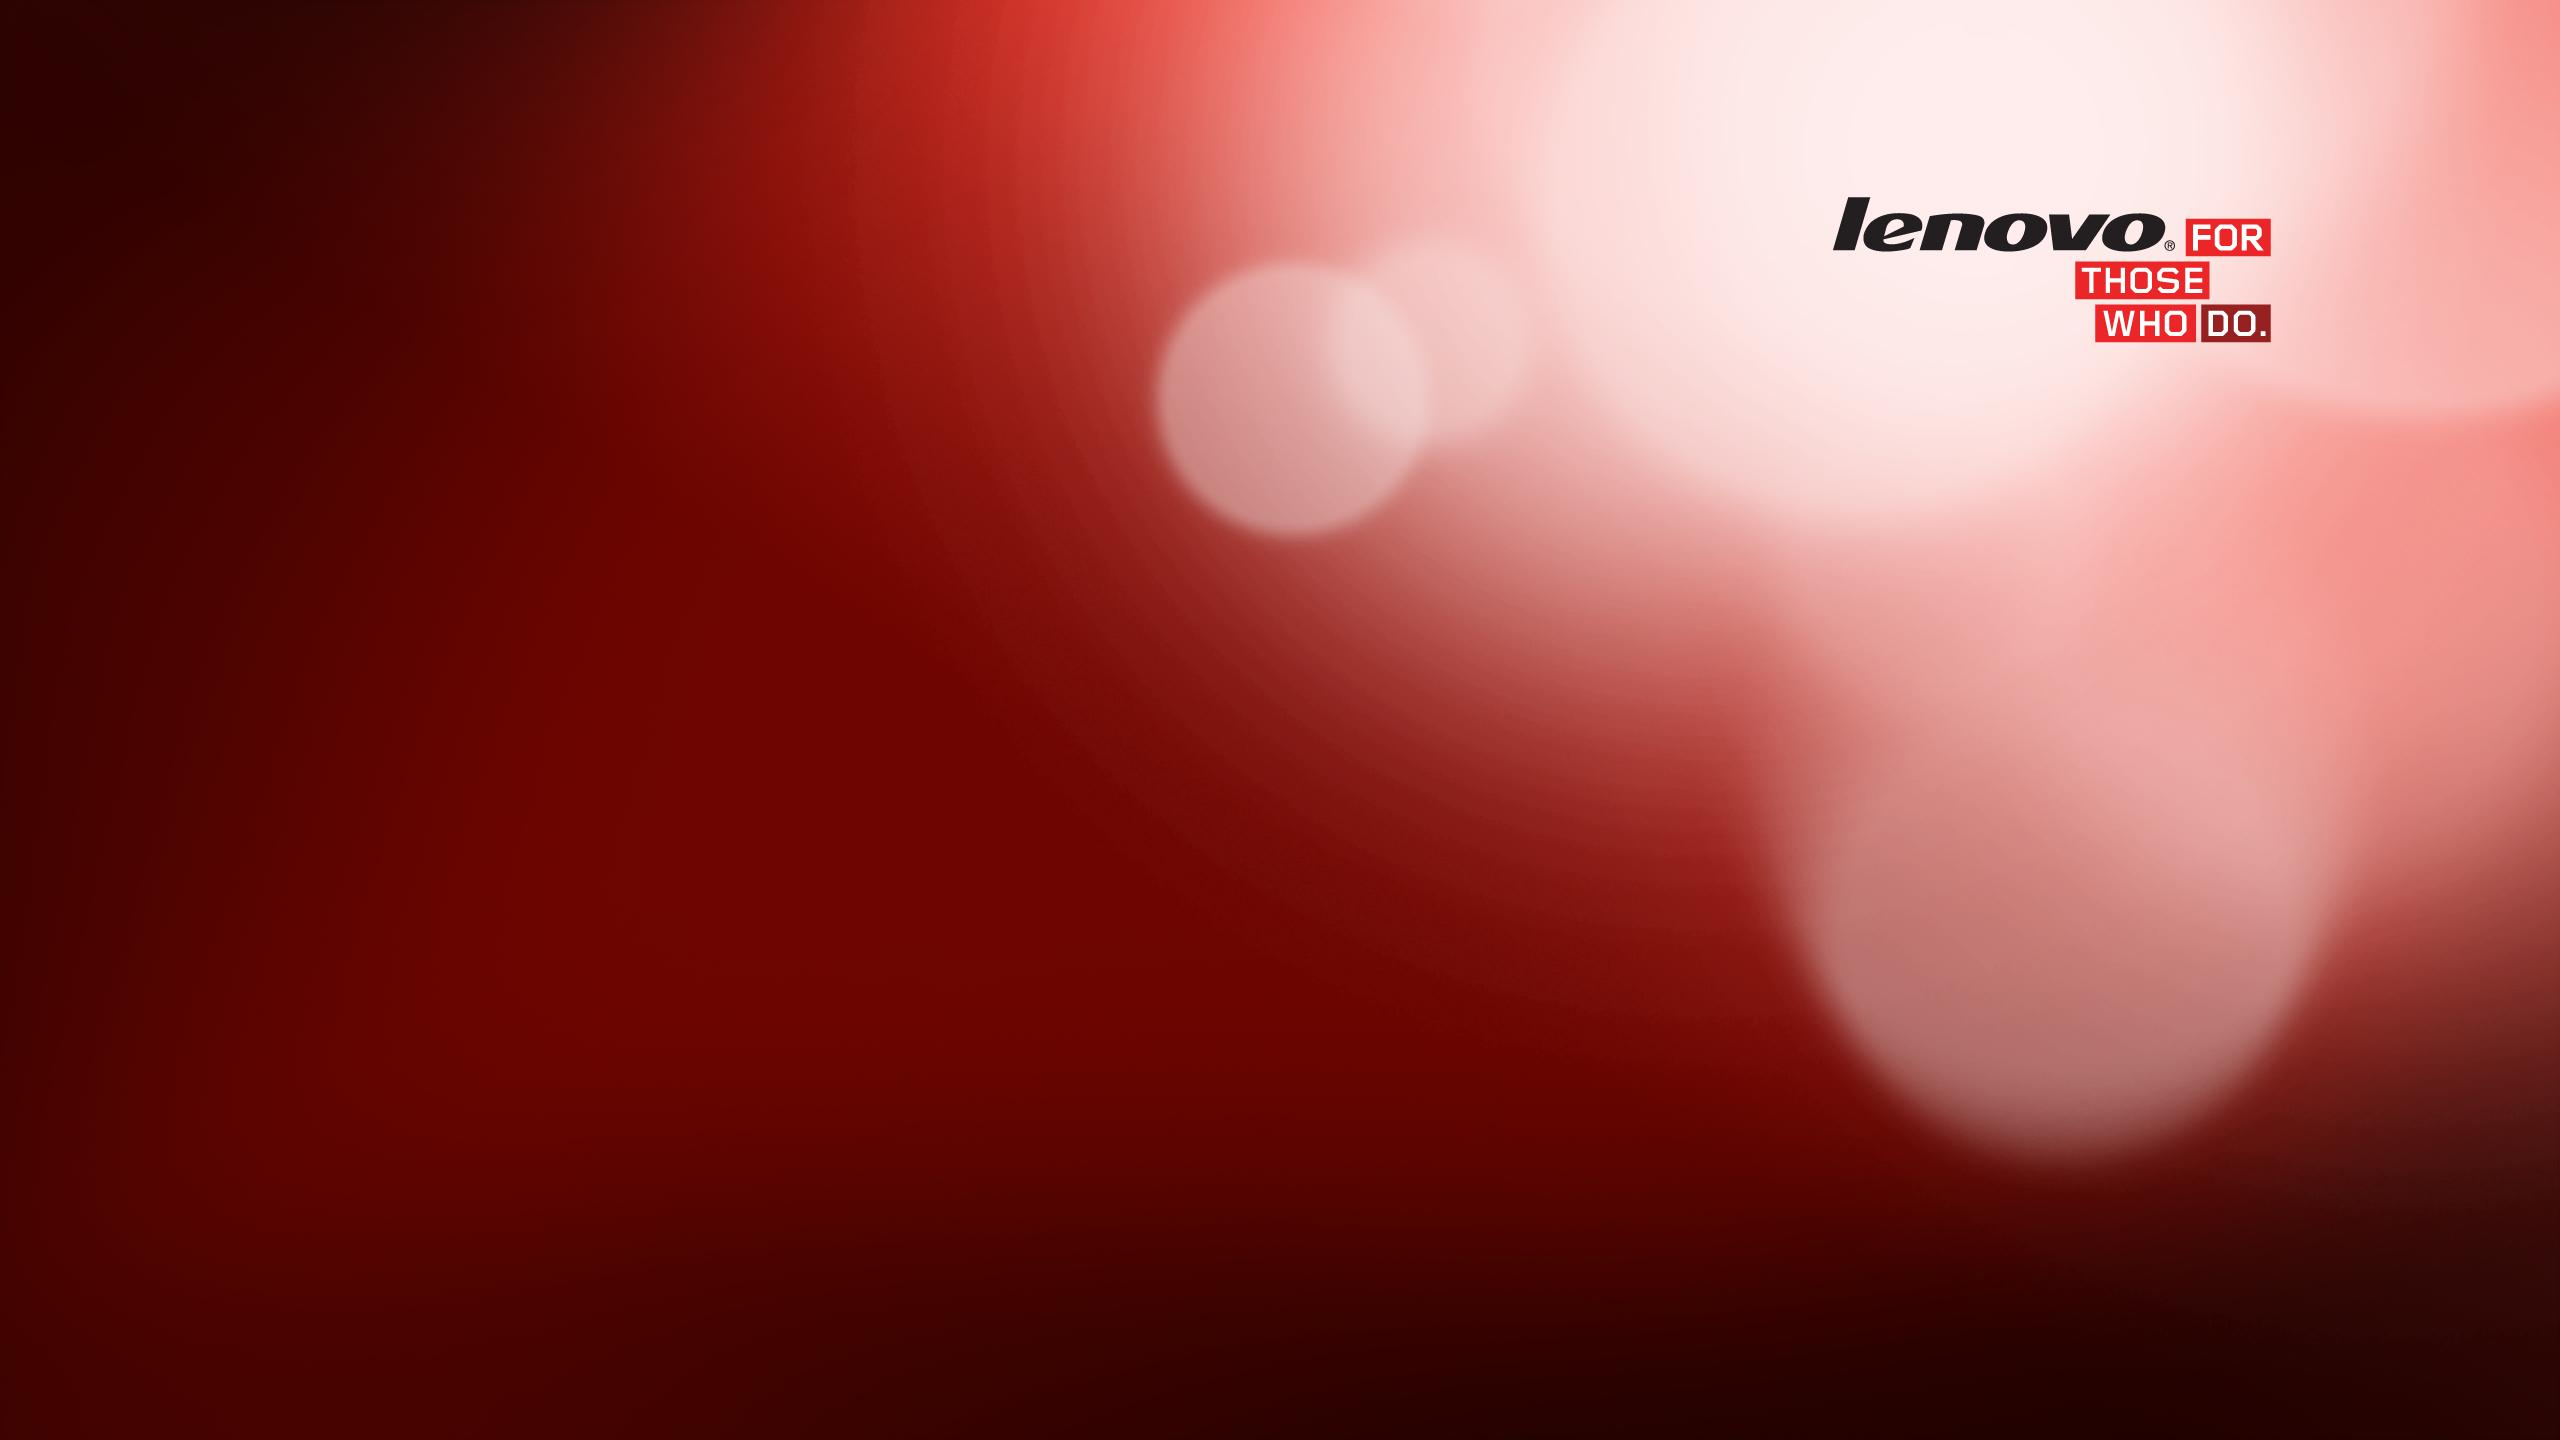 Download Lenovo Wallpapers Group (68+)